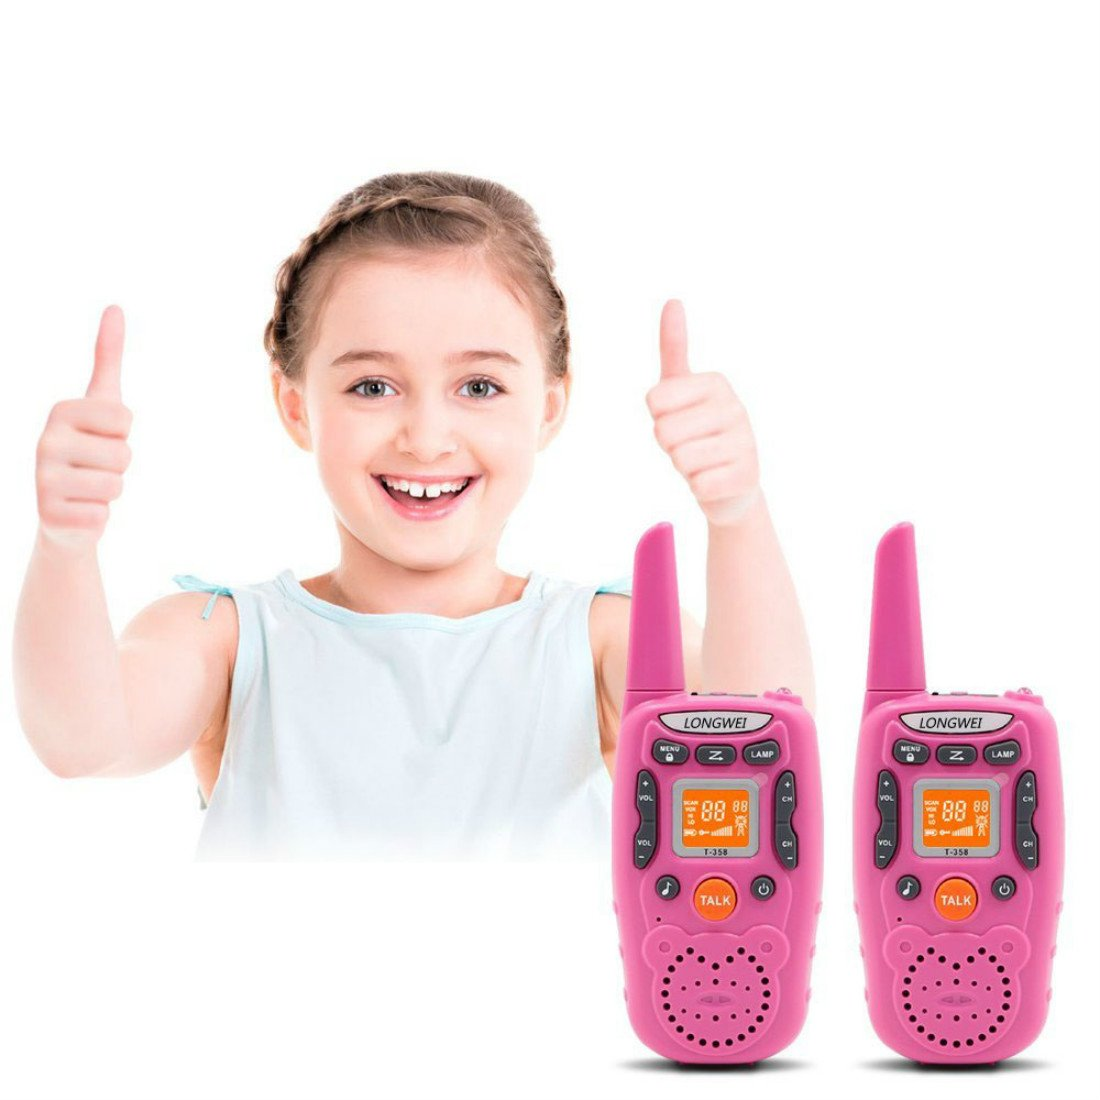 Kids Walkie Talkie Set 0.5W FRS/GMRS 22 Channel Two Way Radio Up to 3 Km Range for Children Camping Hiking(2PCS Pink)